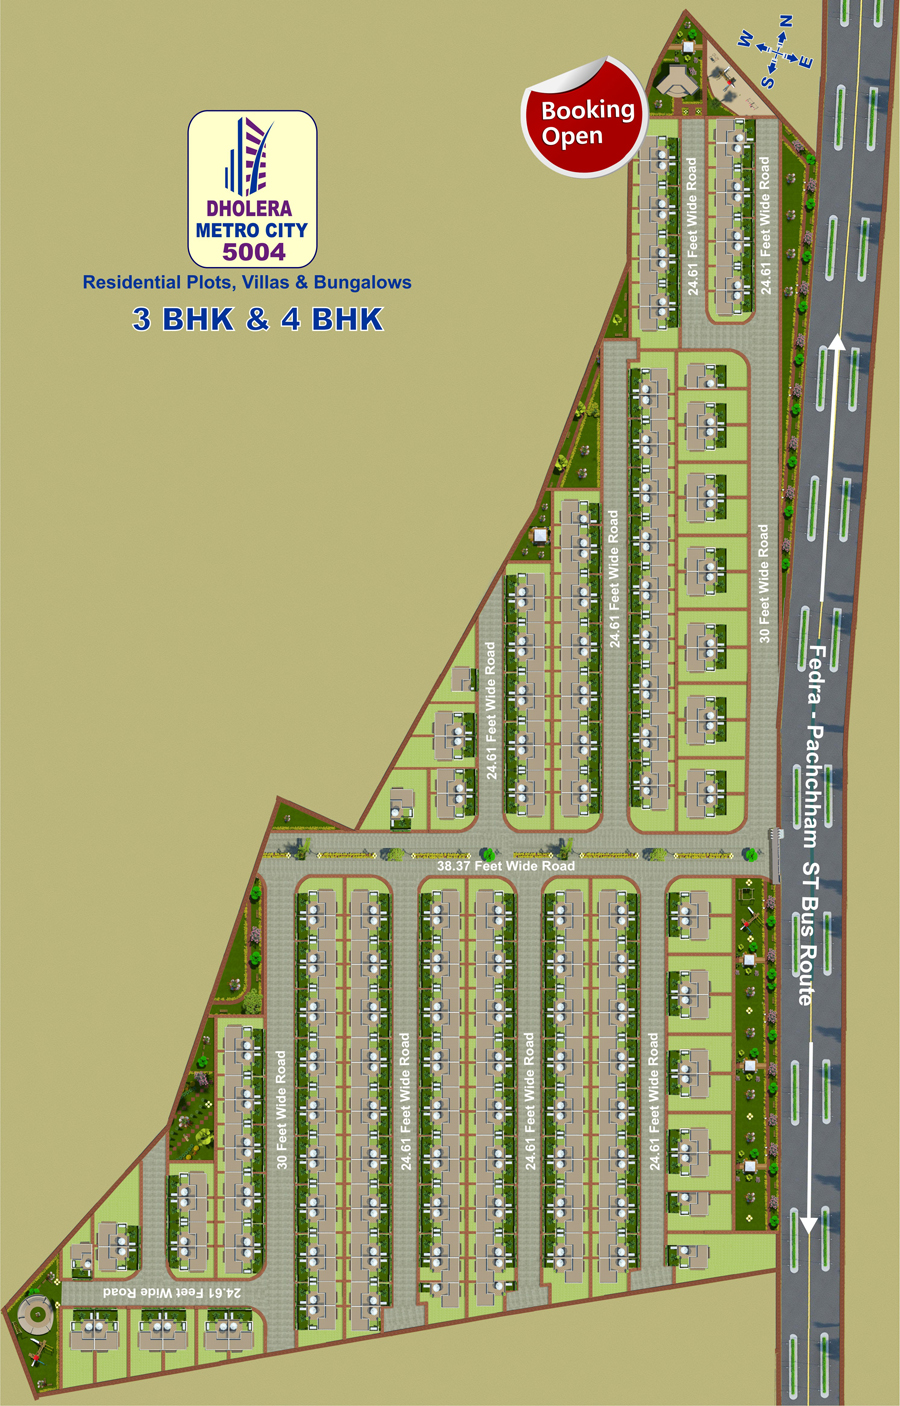 layout bungalows Dholera Metro City-5004